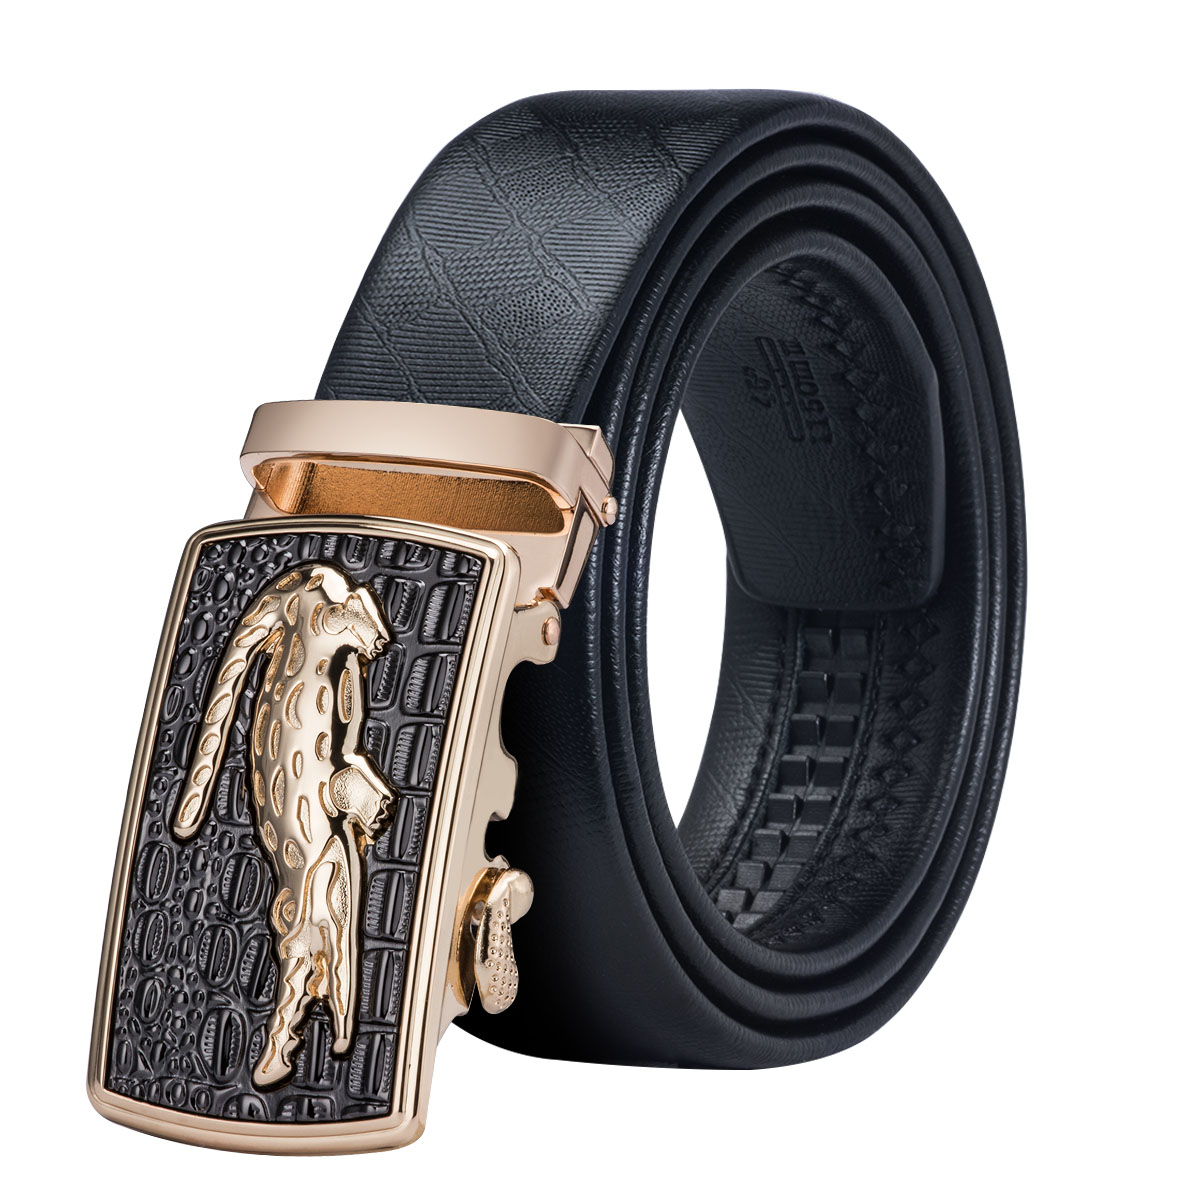 Mens PU Leather Automatic Buckle Belts SUPPION Fashion Waist Strap for Men